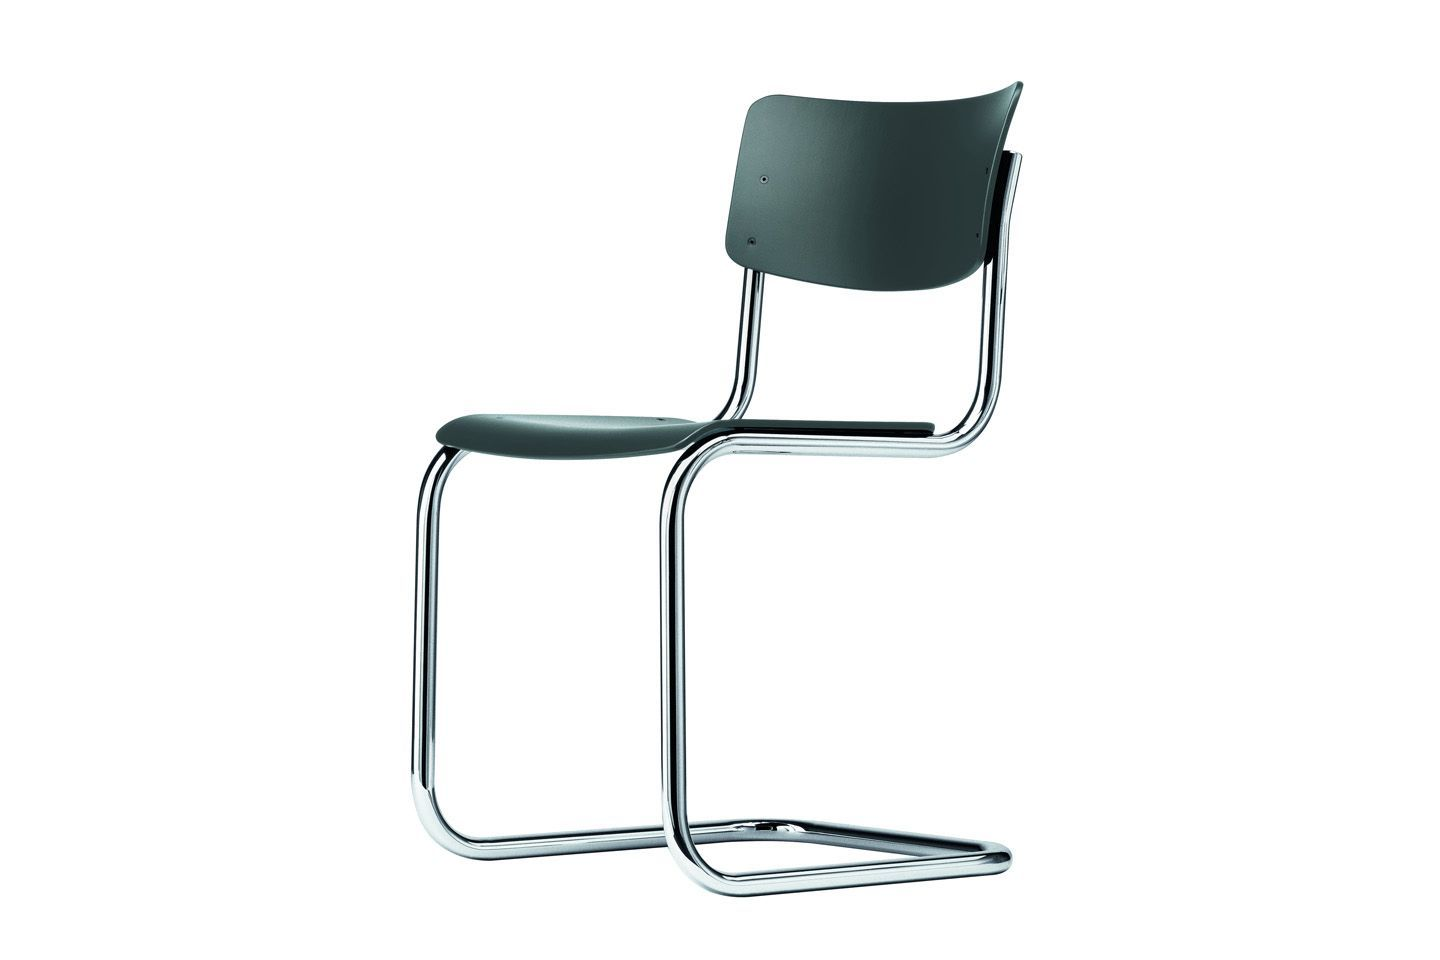 Thonet Lum S 43 By Mart Stam For Thonet Chairs Seats Wood Chairs